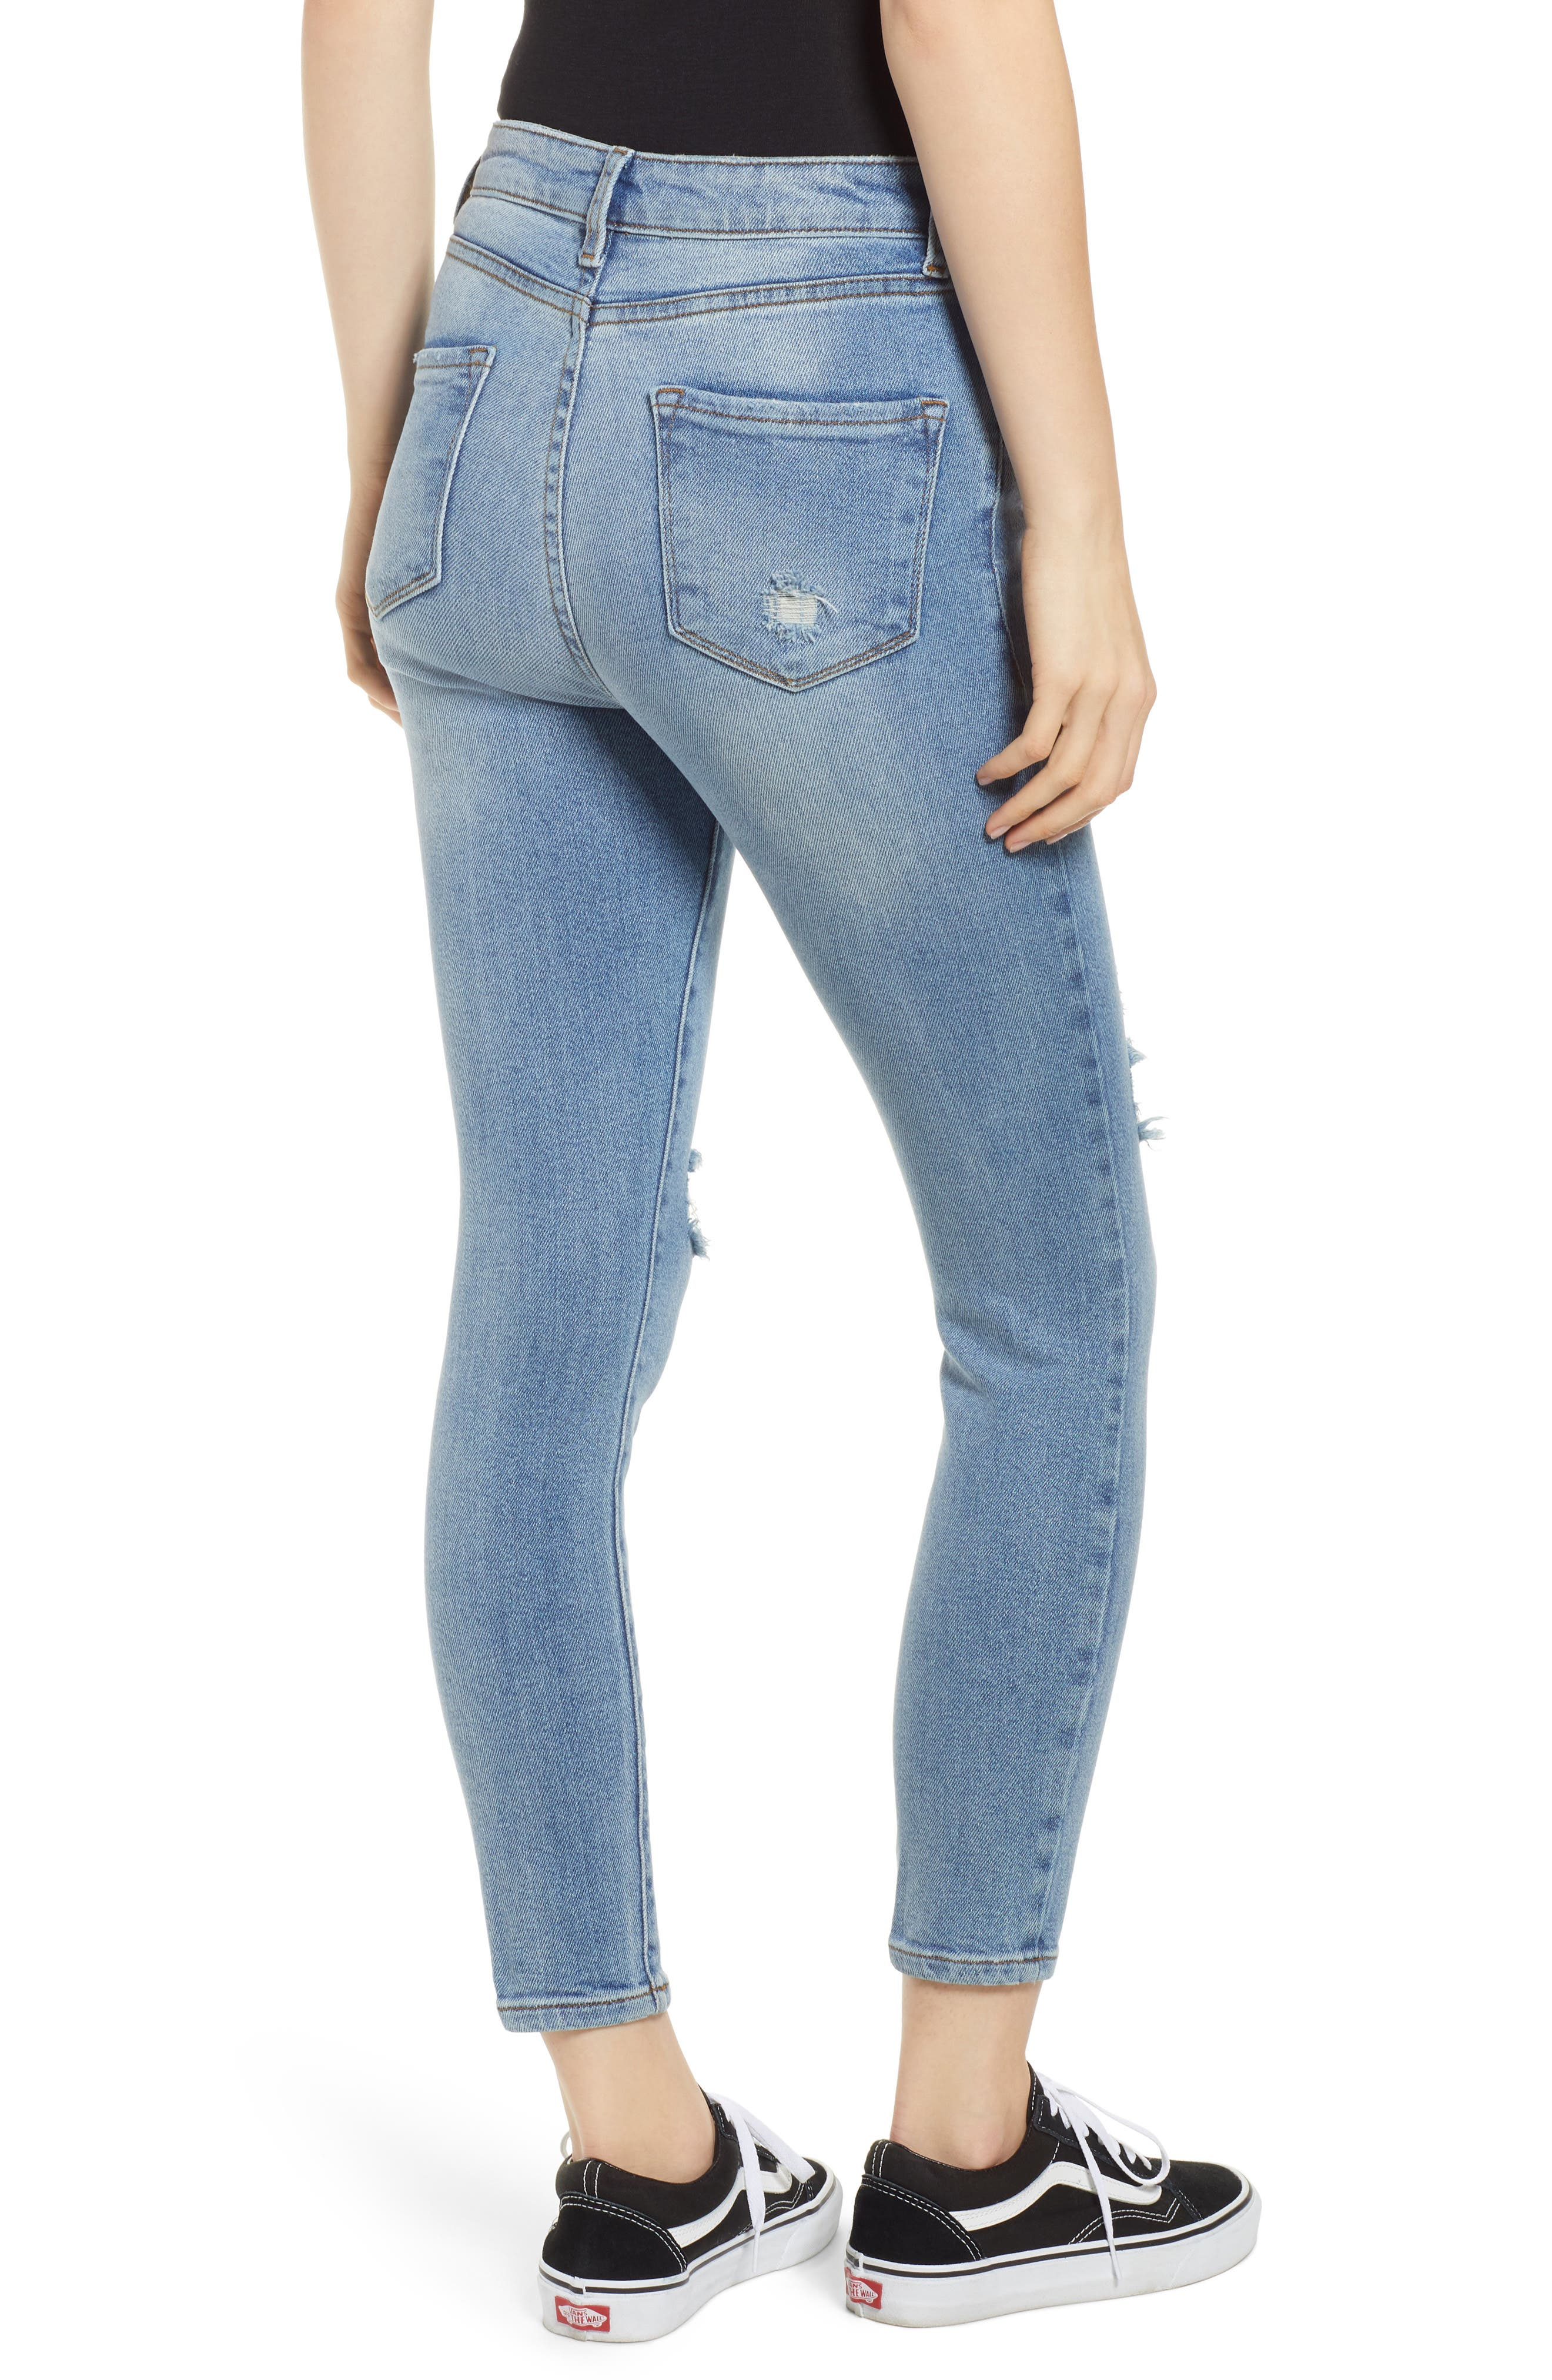 STS BLUE, Brie High Waist Ripped Skinny Jeans, Alternate thumbnail 2, color, 400